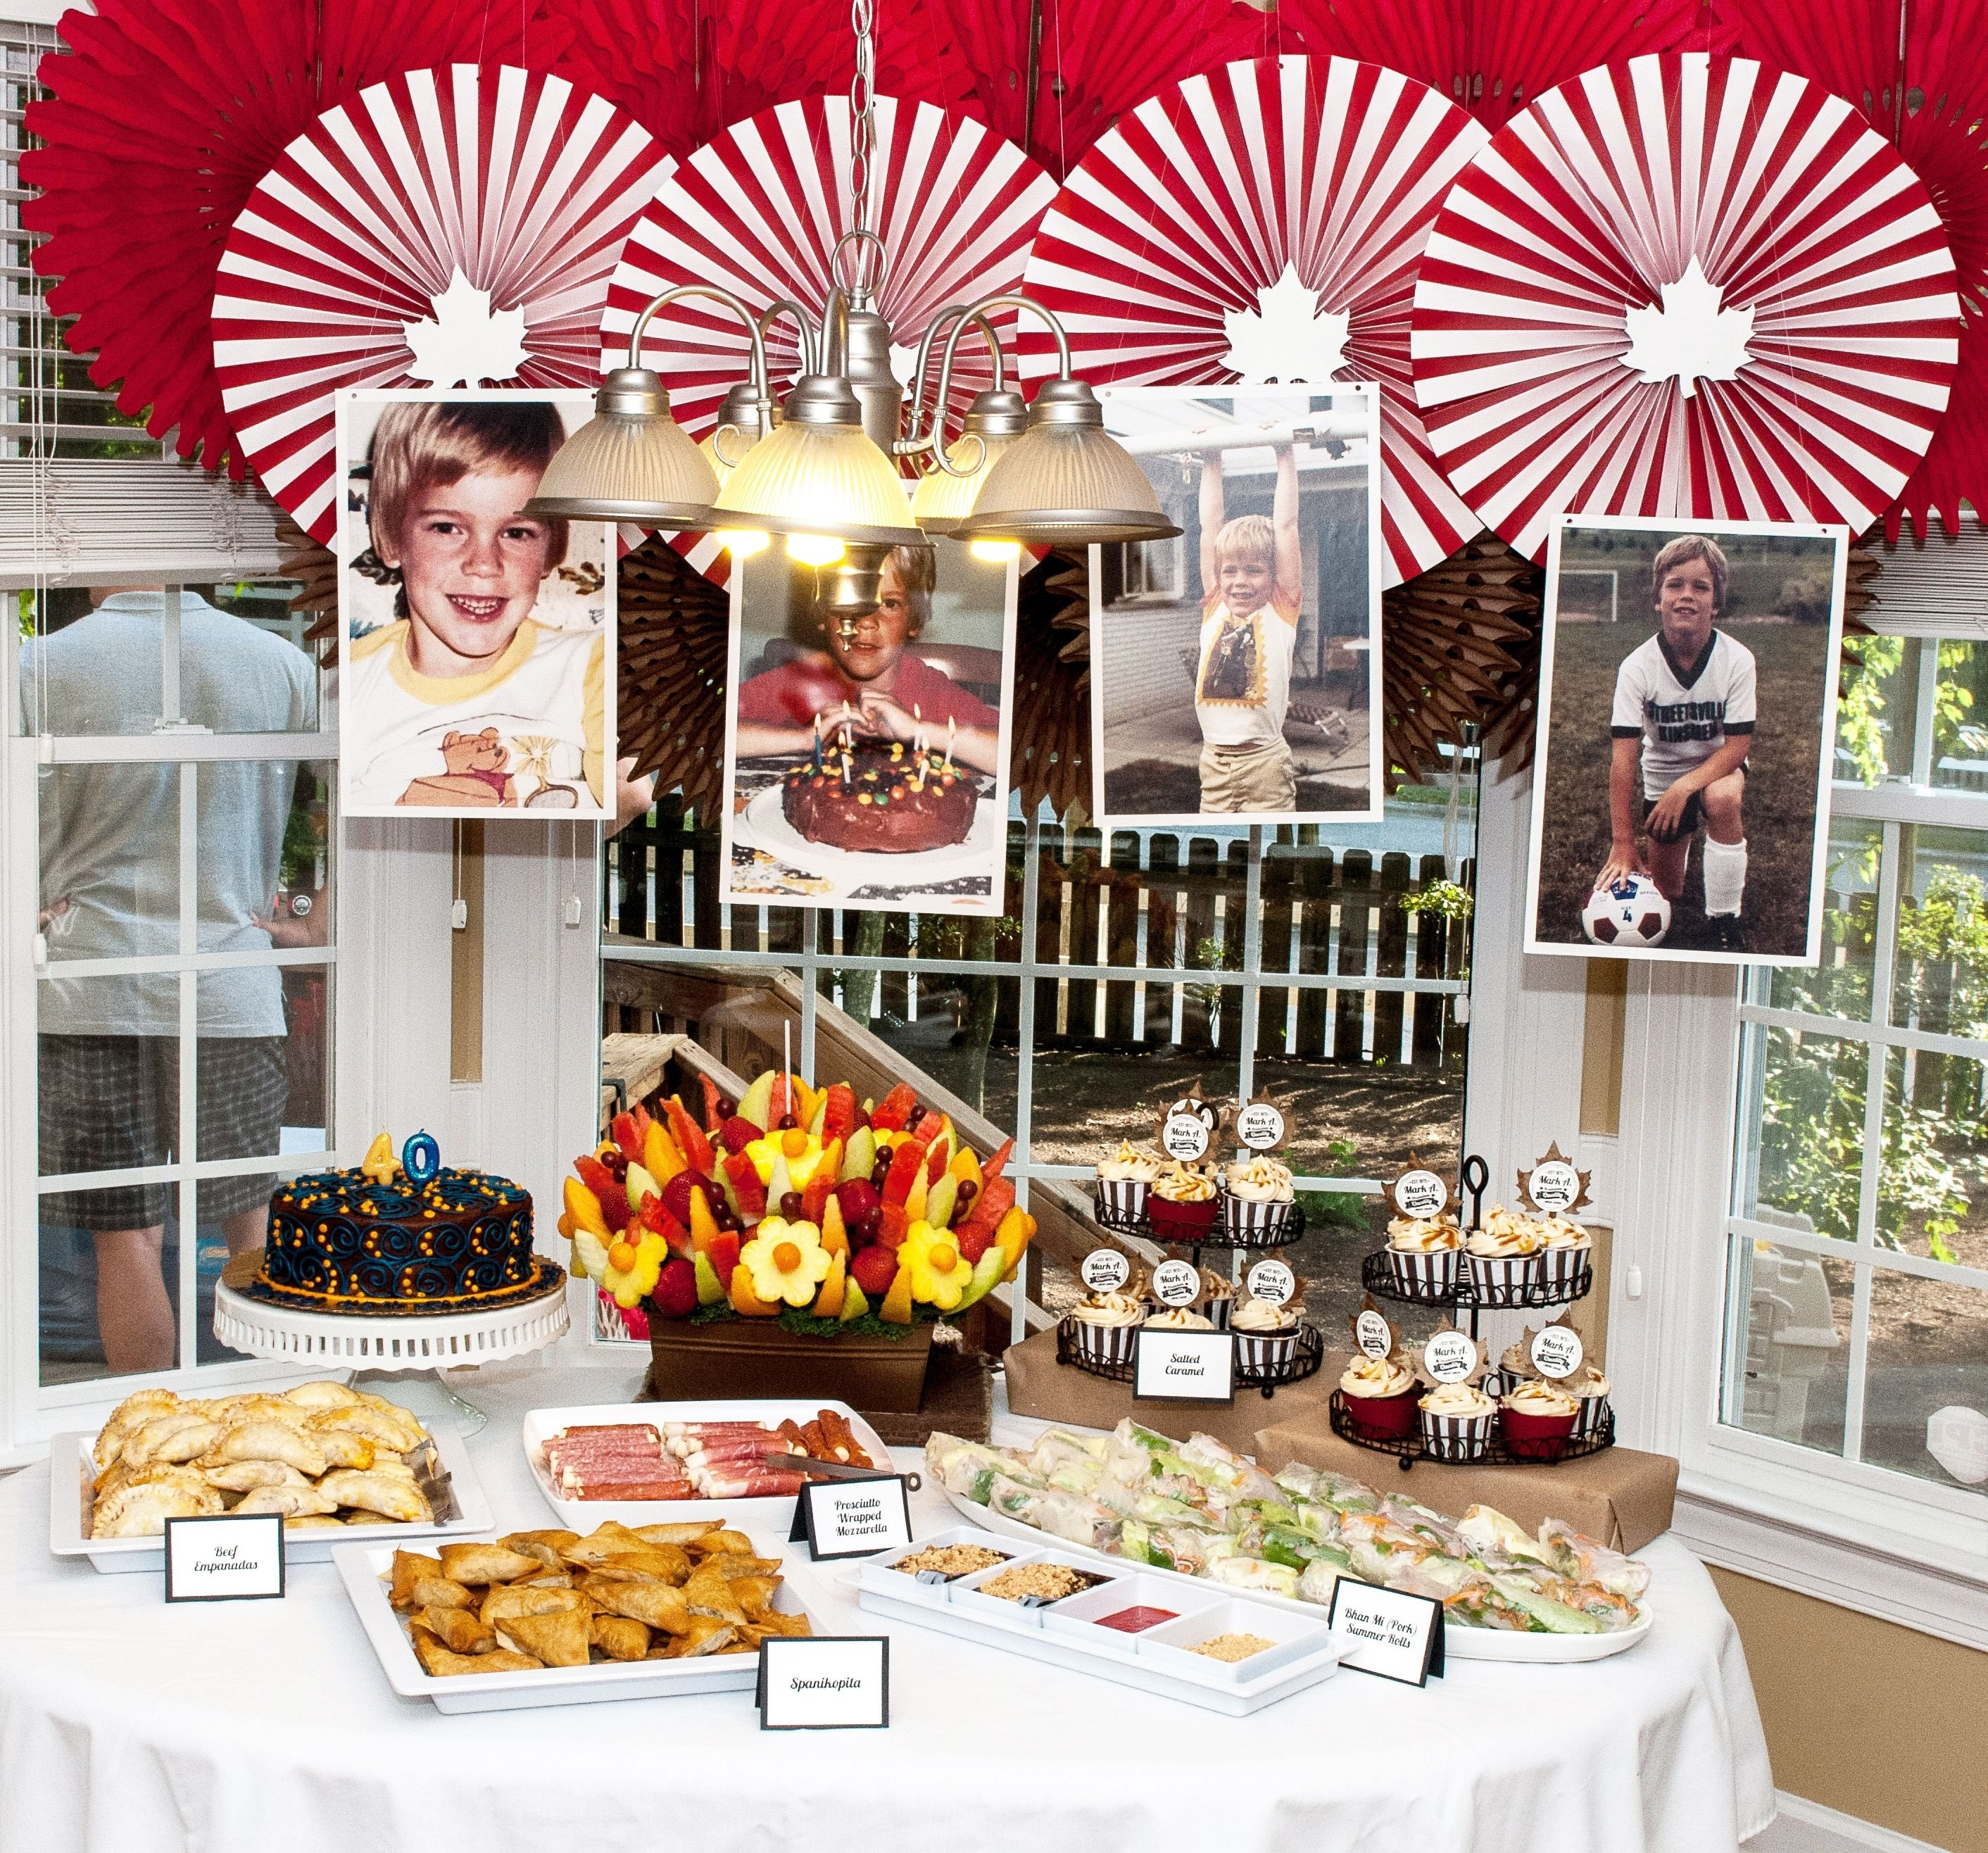 10 Lovable Birthday Party Ideas For Men 40th birthday party ideas for men google search 30th birthday 1 2020